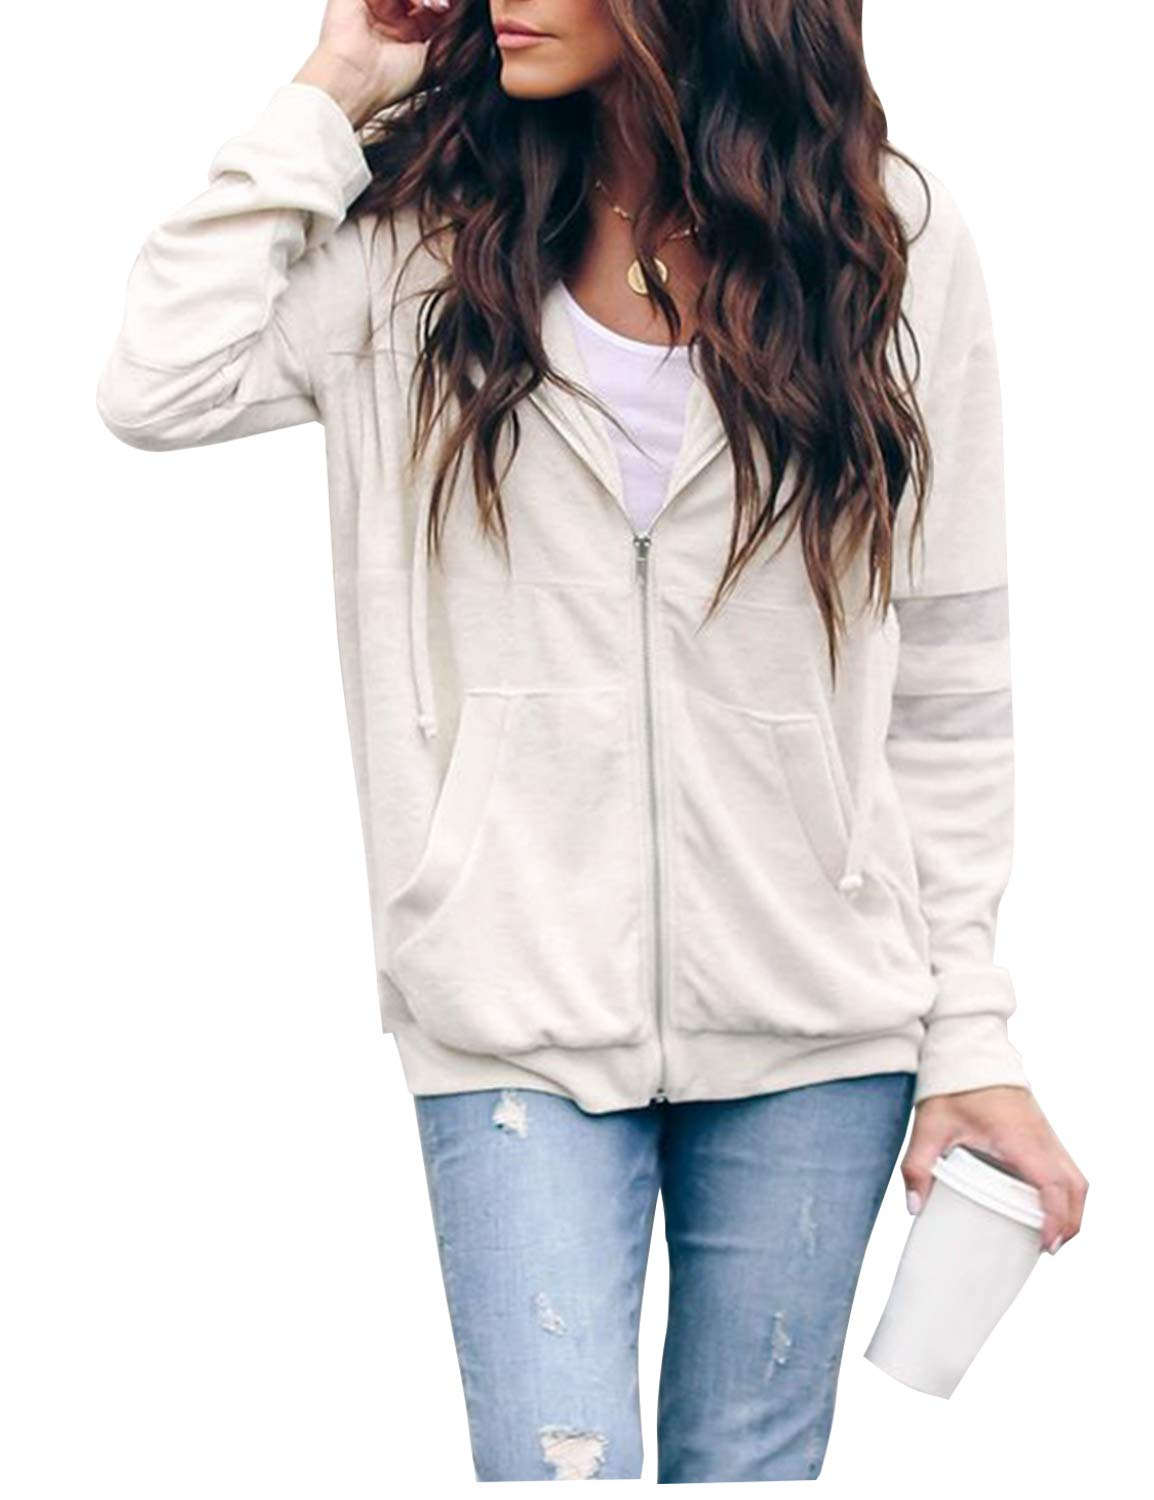 Blooming Jelly Womens Long Sleeve Zip Up Pocketed Hoodie Jacket White